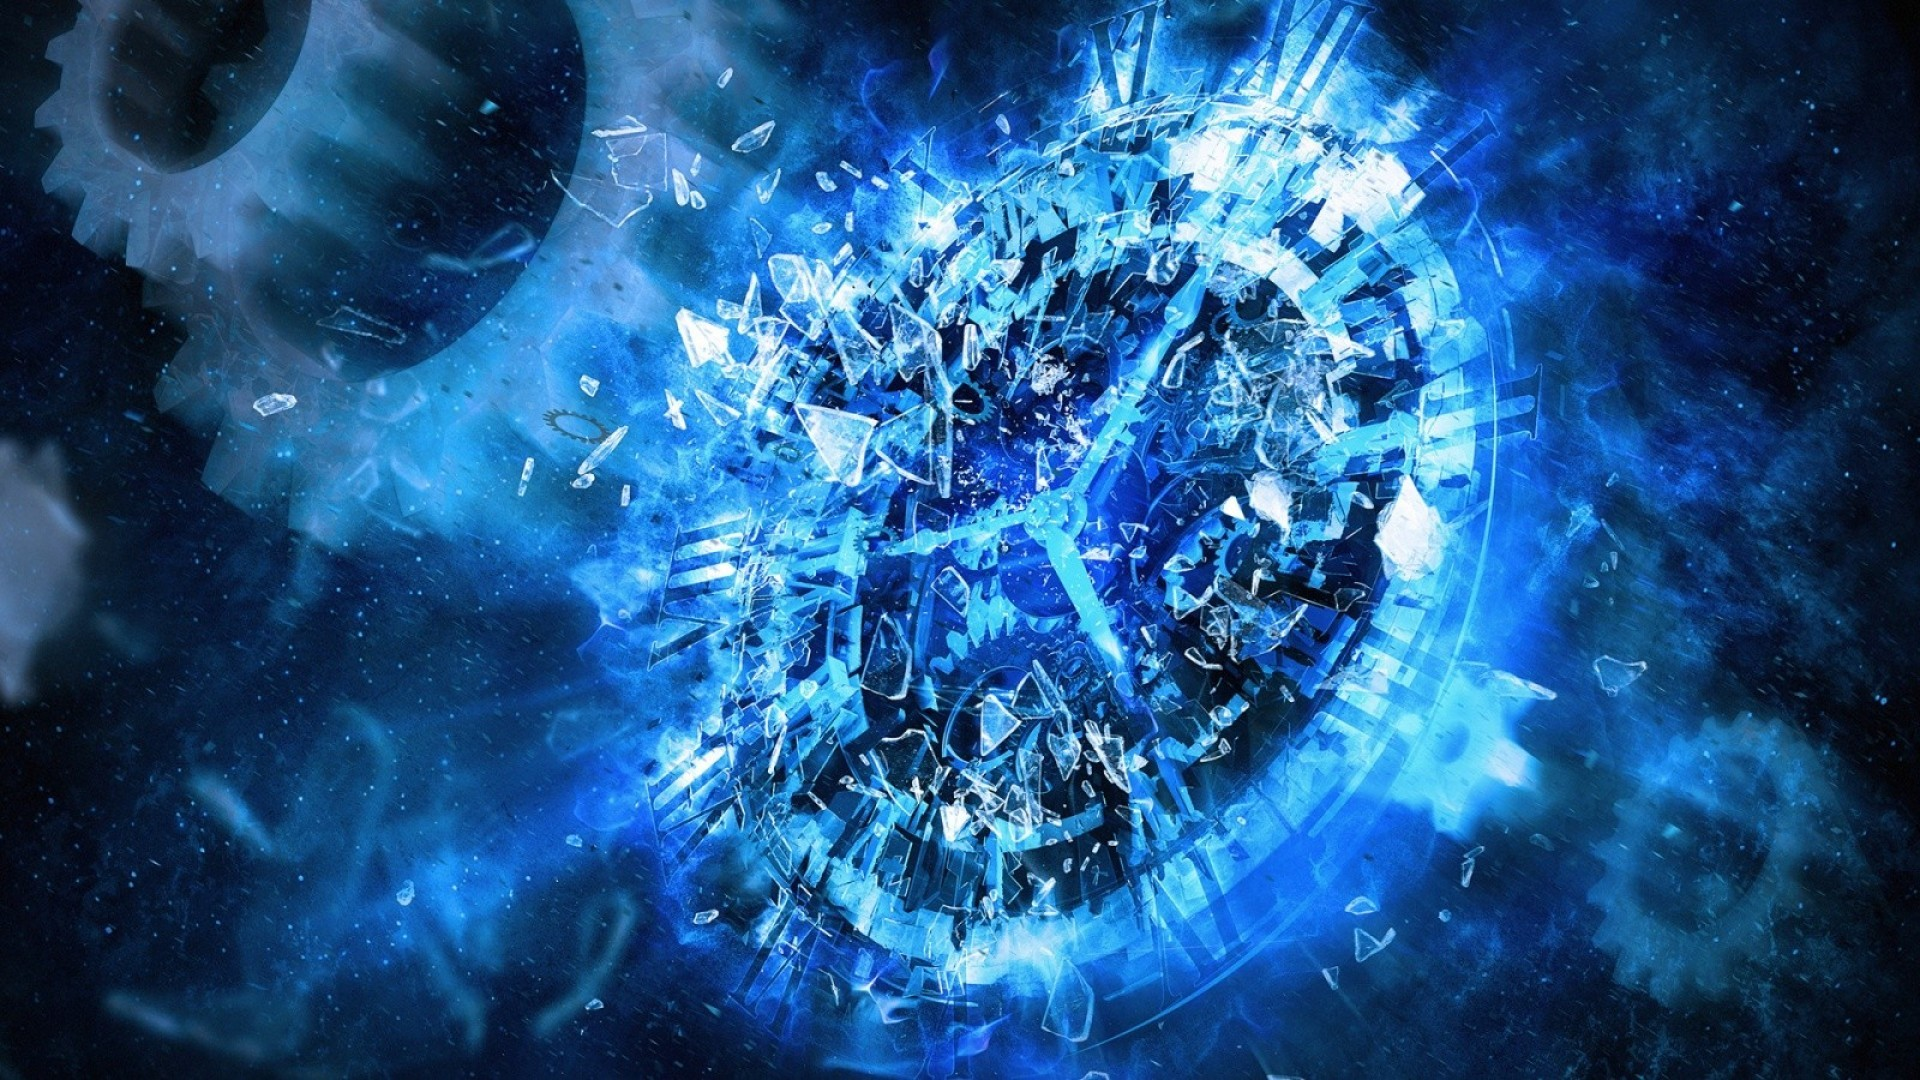 here's some stunning widescreen hd abstract desktop wallpaper and background  in